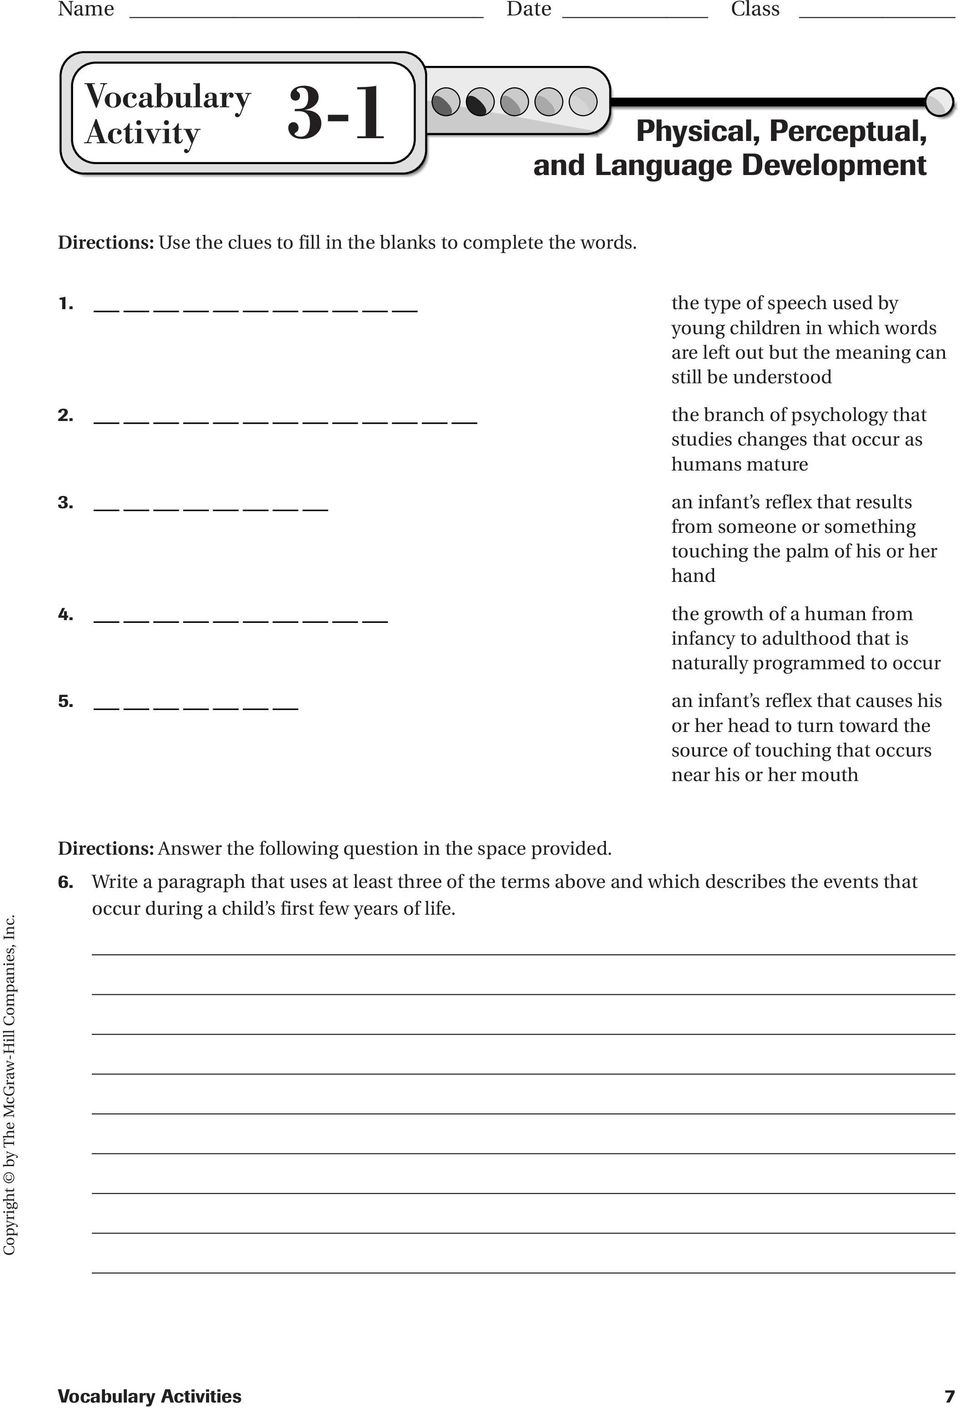 guided reading activity 5-1 adulthood answer key